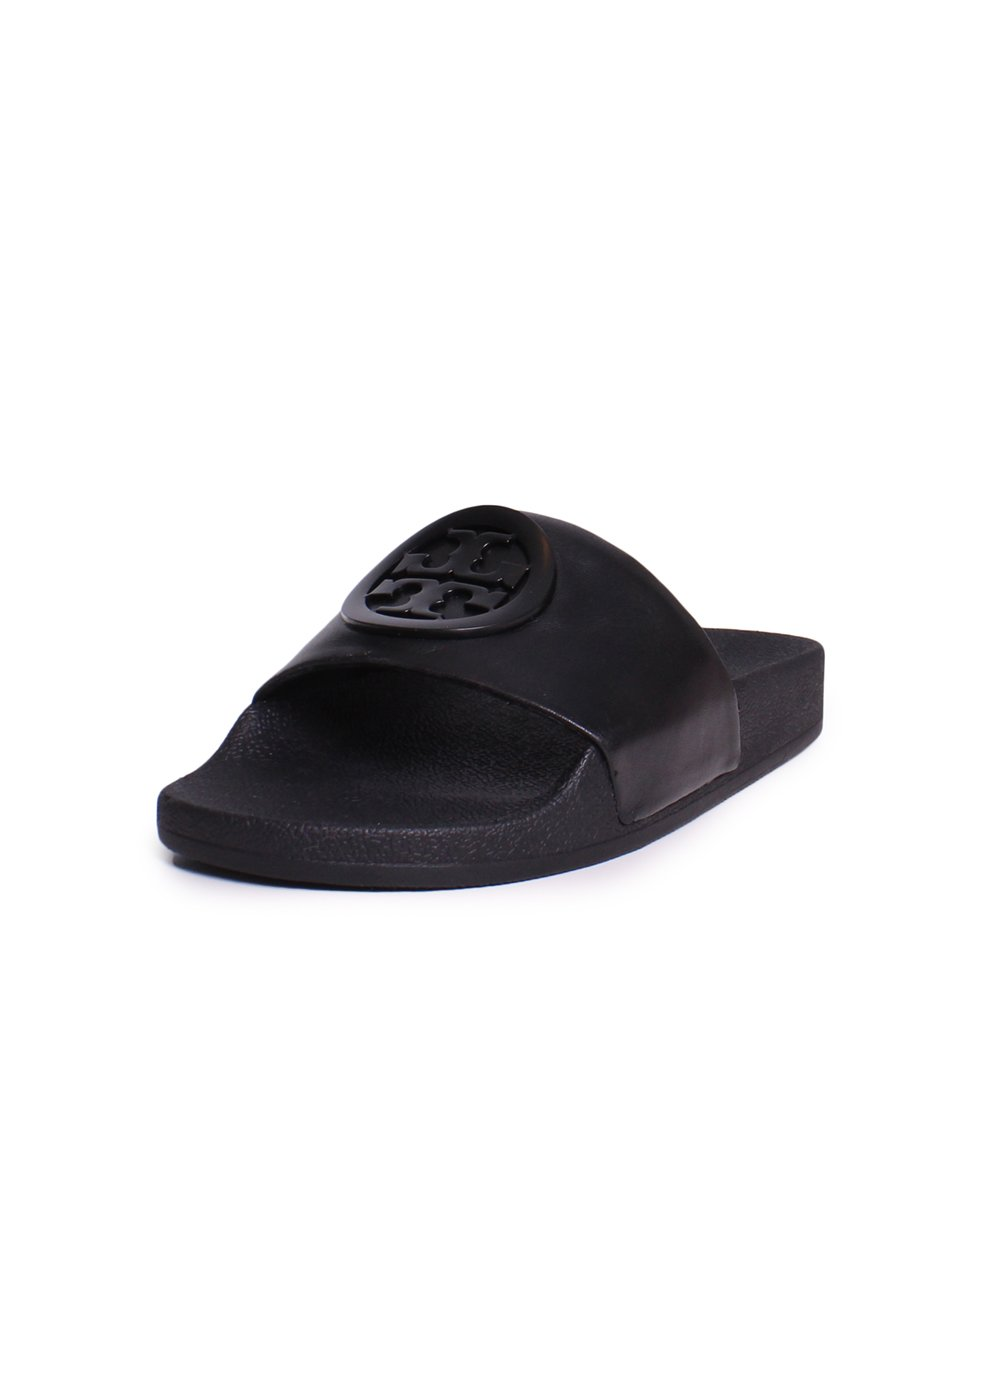 Tory Burch Lina Leather Rubber Label Slider Sandals In Black Size 10